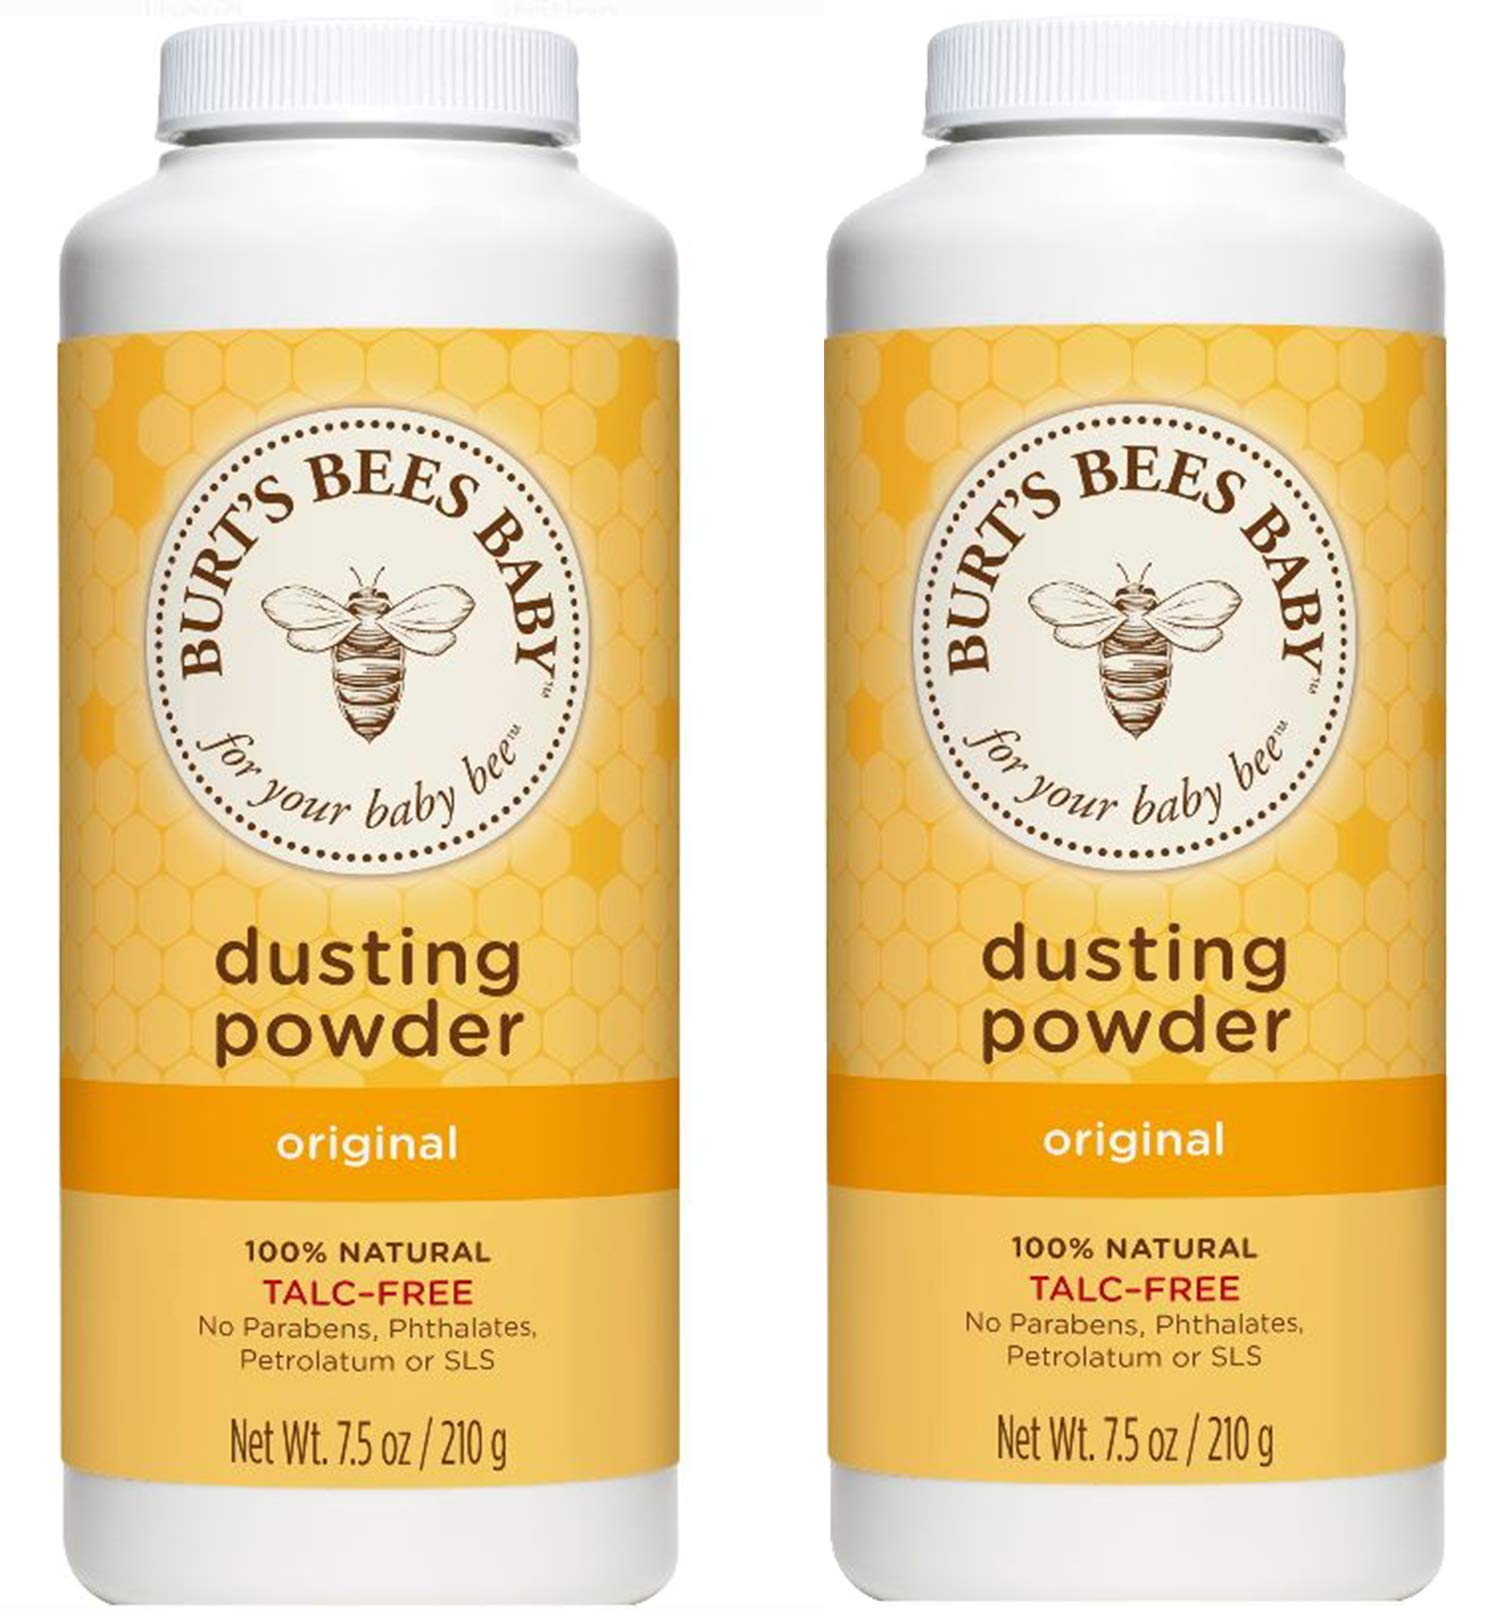 Burt's Bees Baby Bee Dusting Powder Bottle, 7.5-Ounce Bottles (Pack of 2) by Burt's Bees Baby